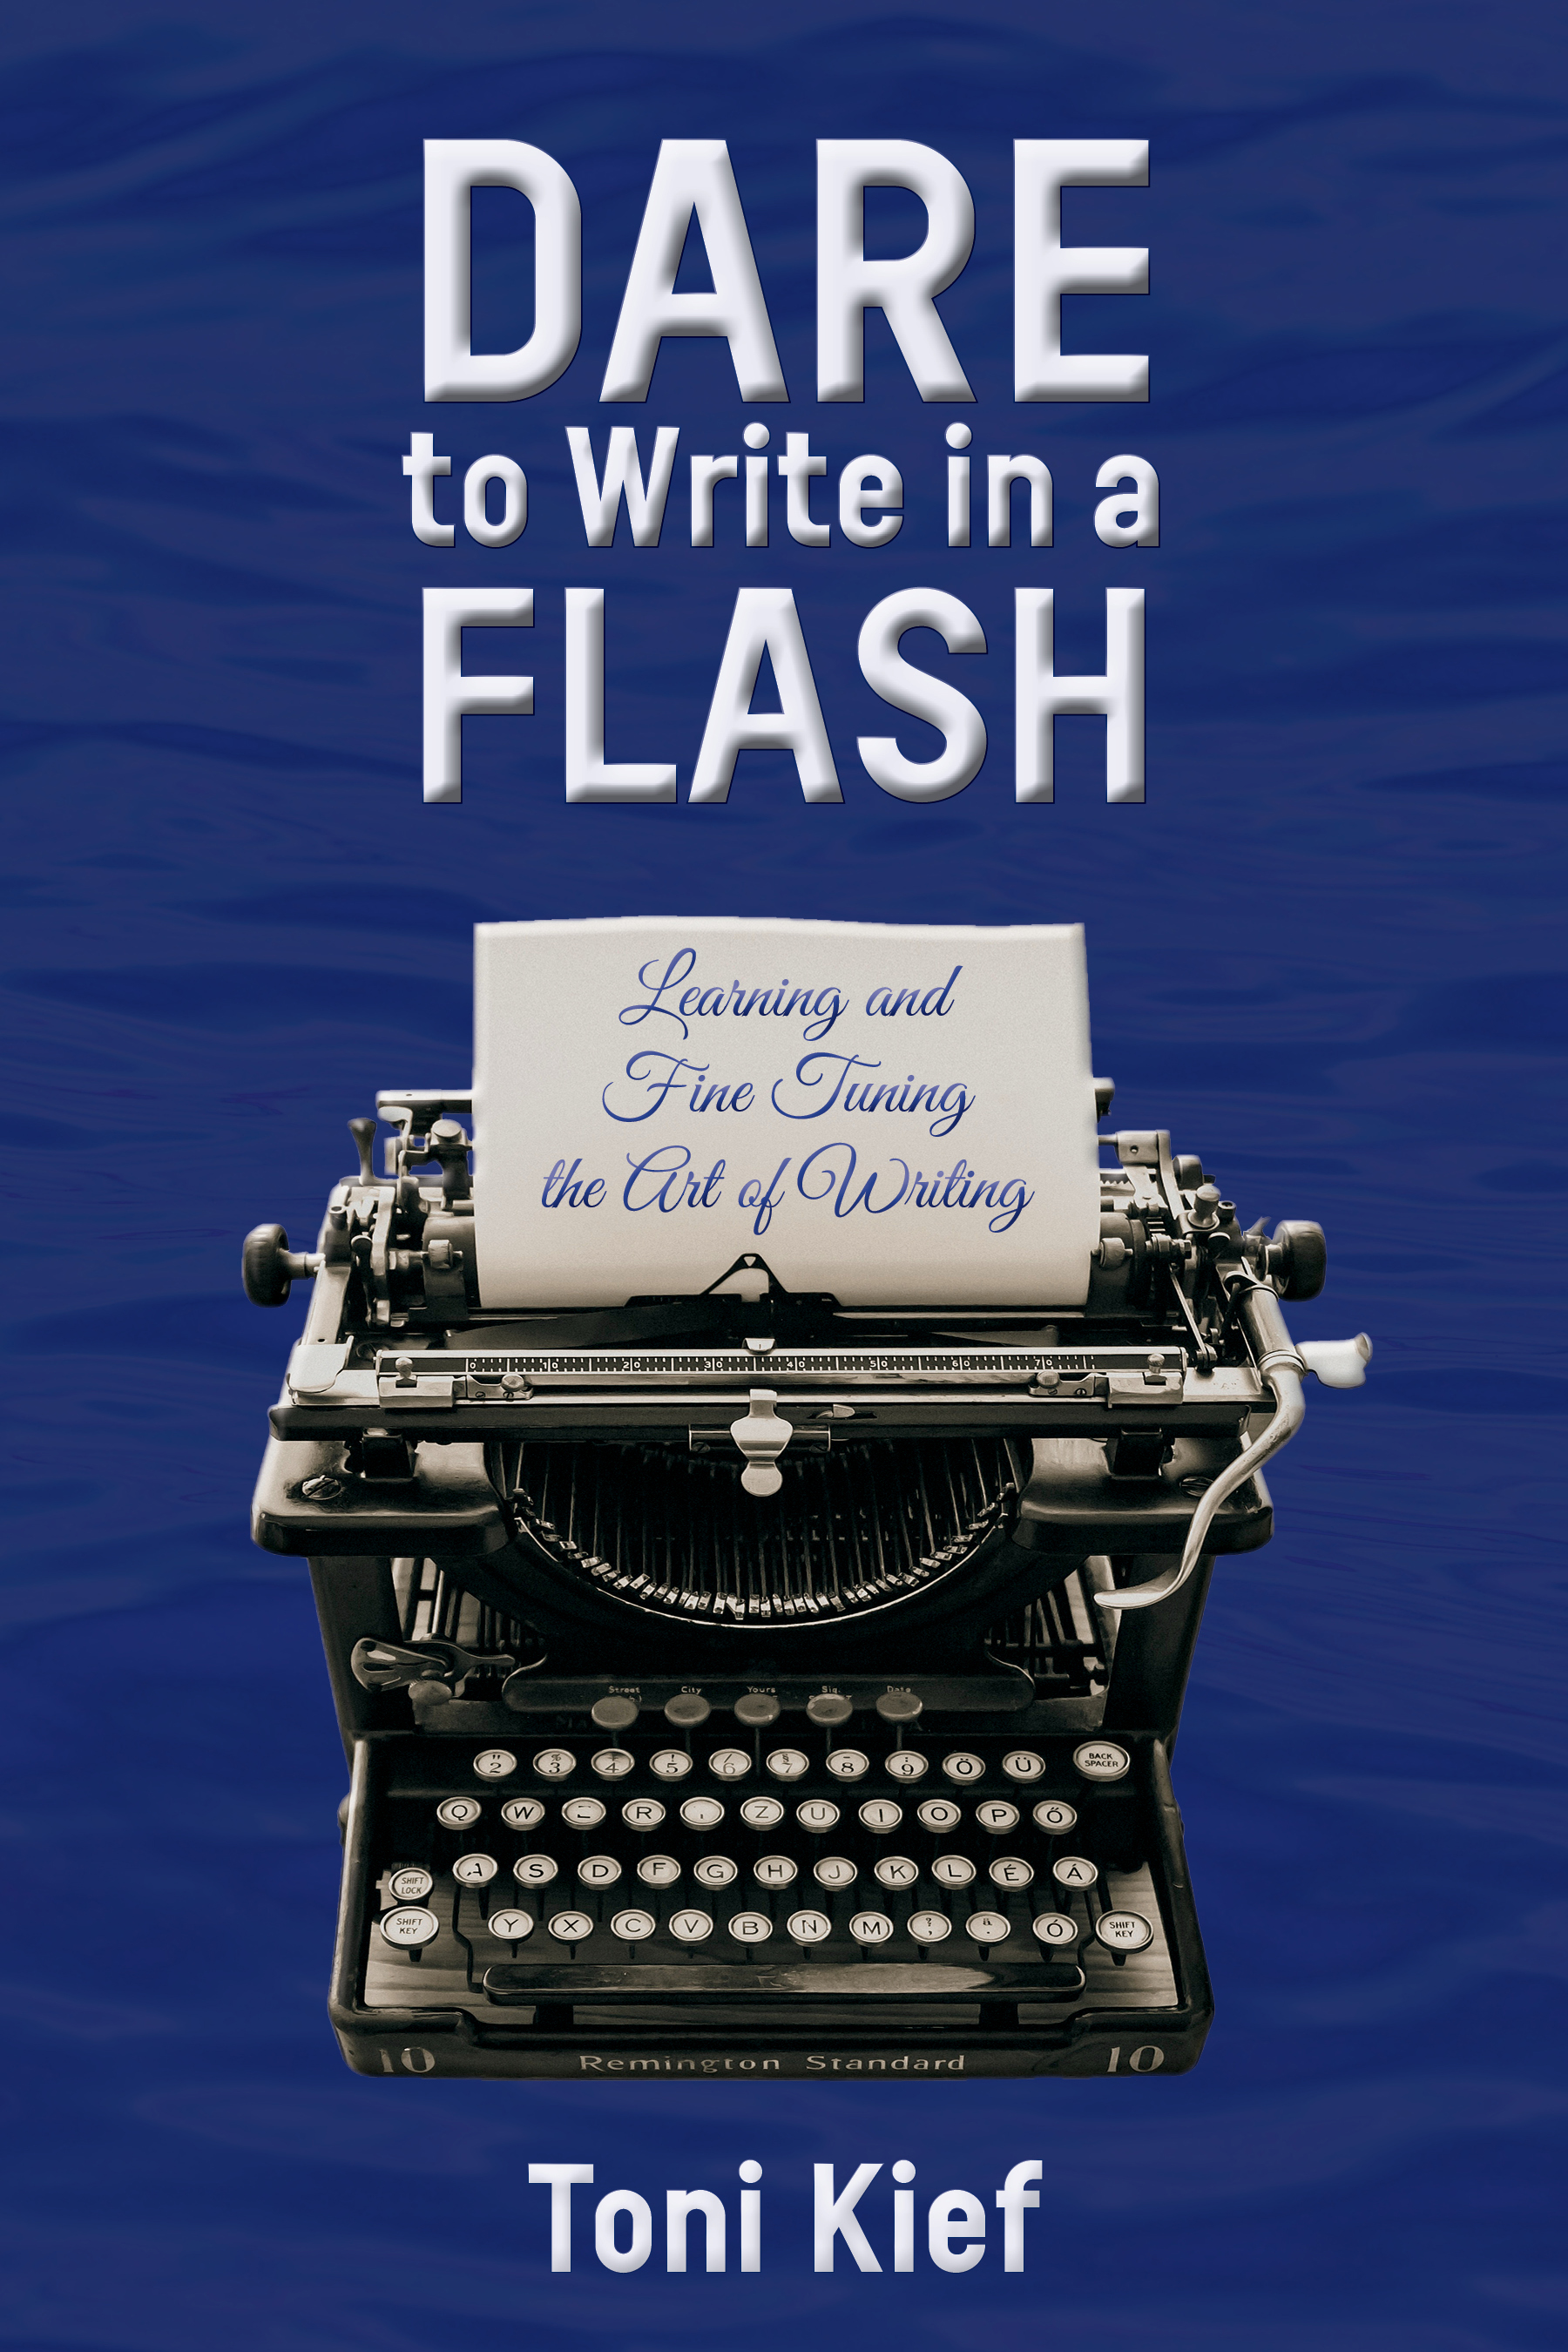 Dare to Write in a Flash by Toni Kief